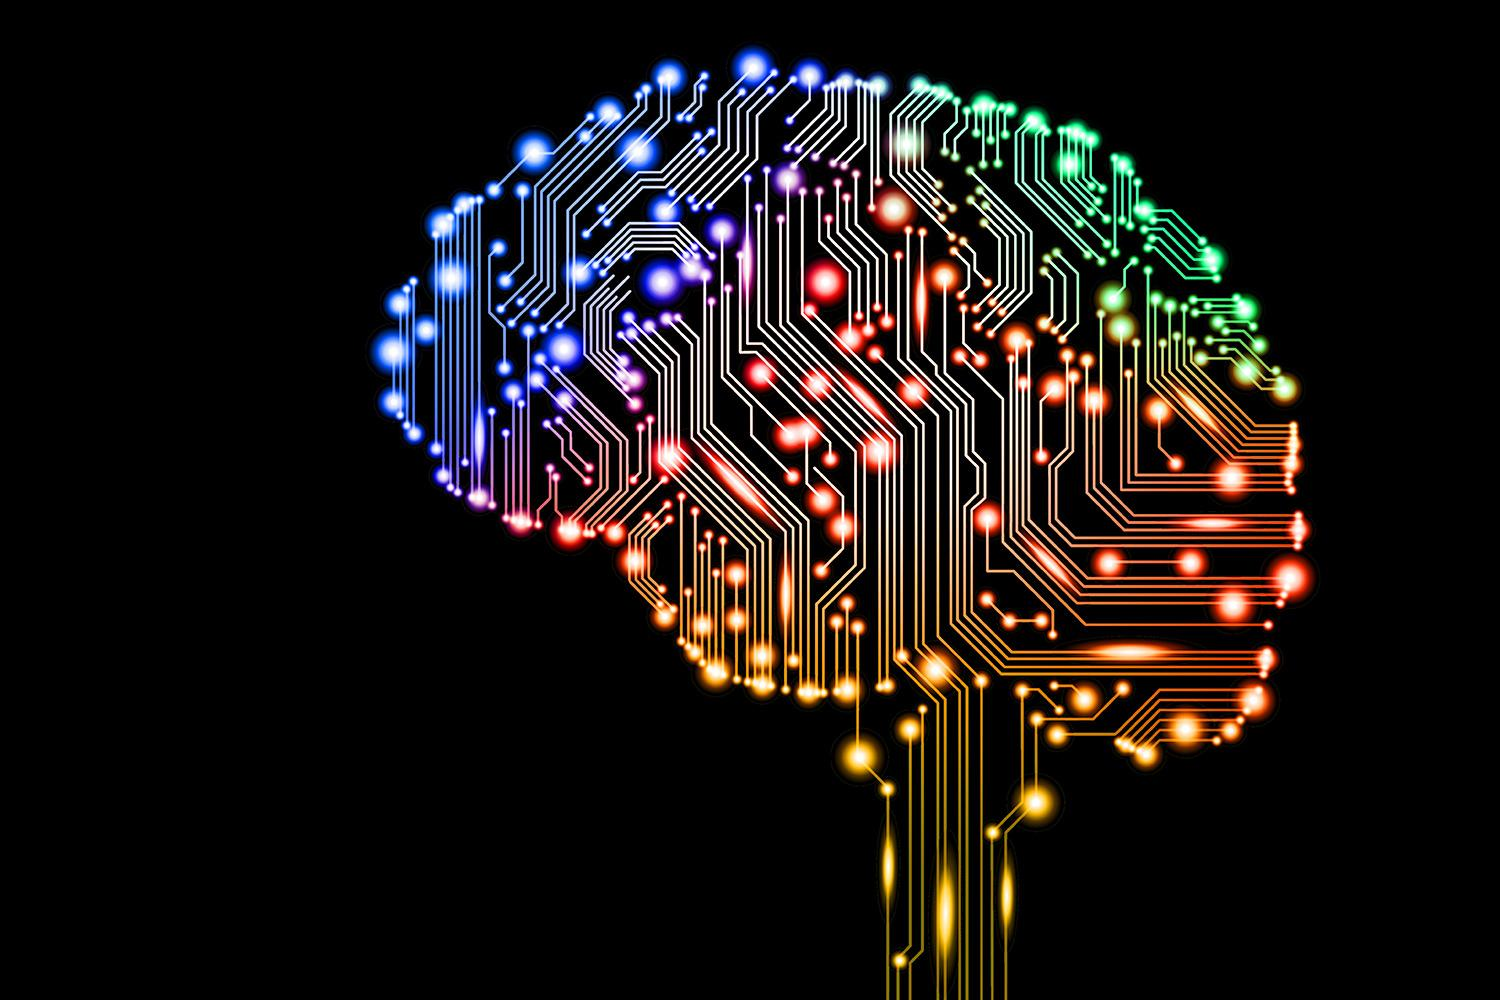 Learning To Trust Artificial Intelligence: An Optimist's View